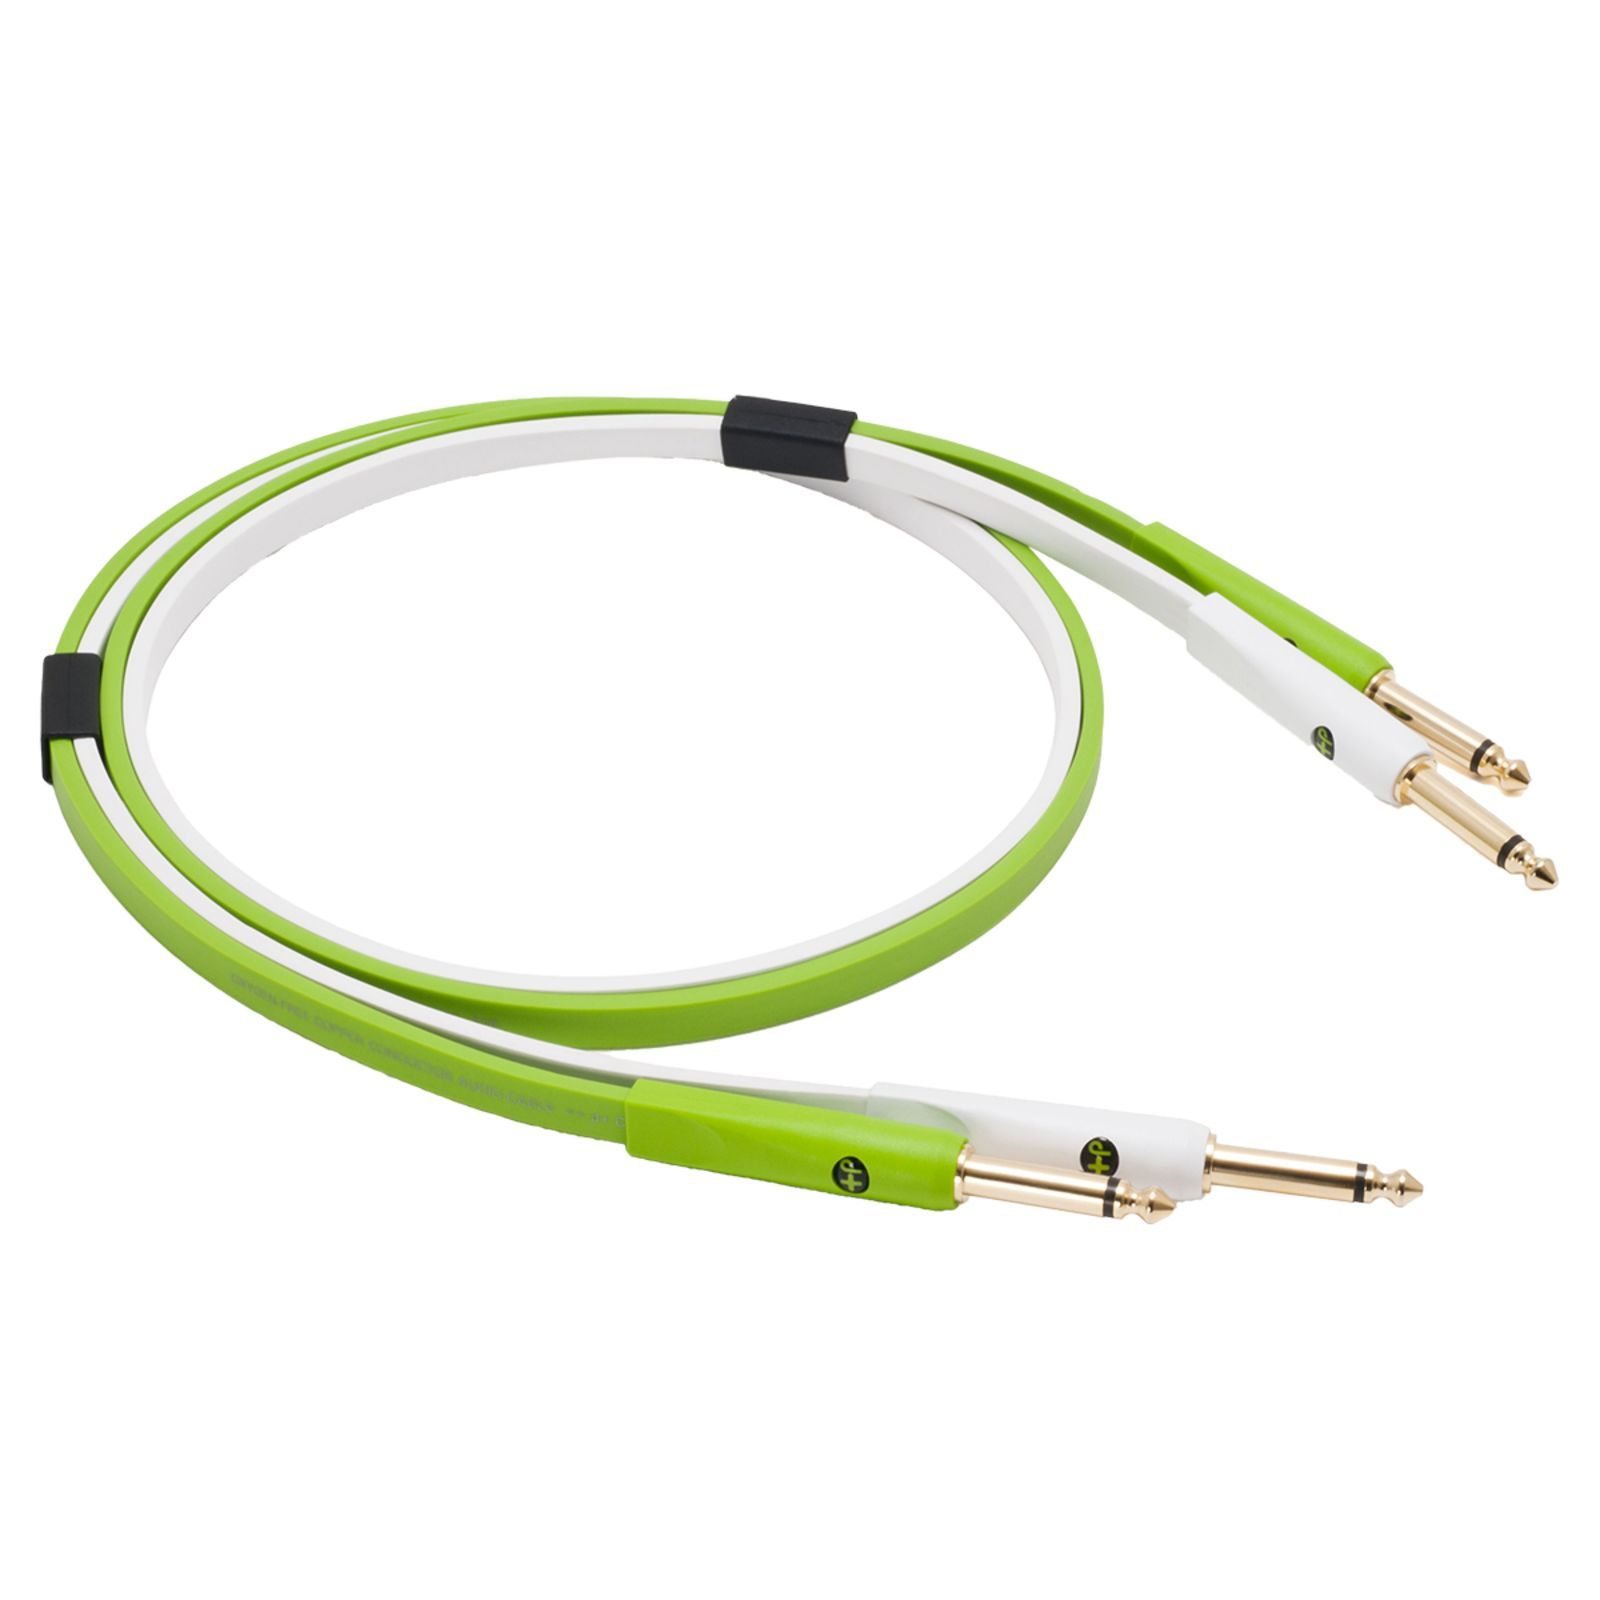 NEO by Oyaide d+ 2x6.3mm-Mono-Jack Cable Class B, 3.0m Length Immagine prodotto